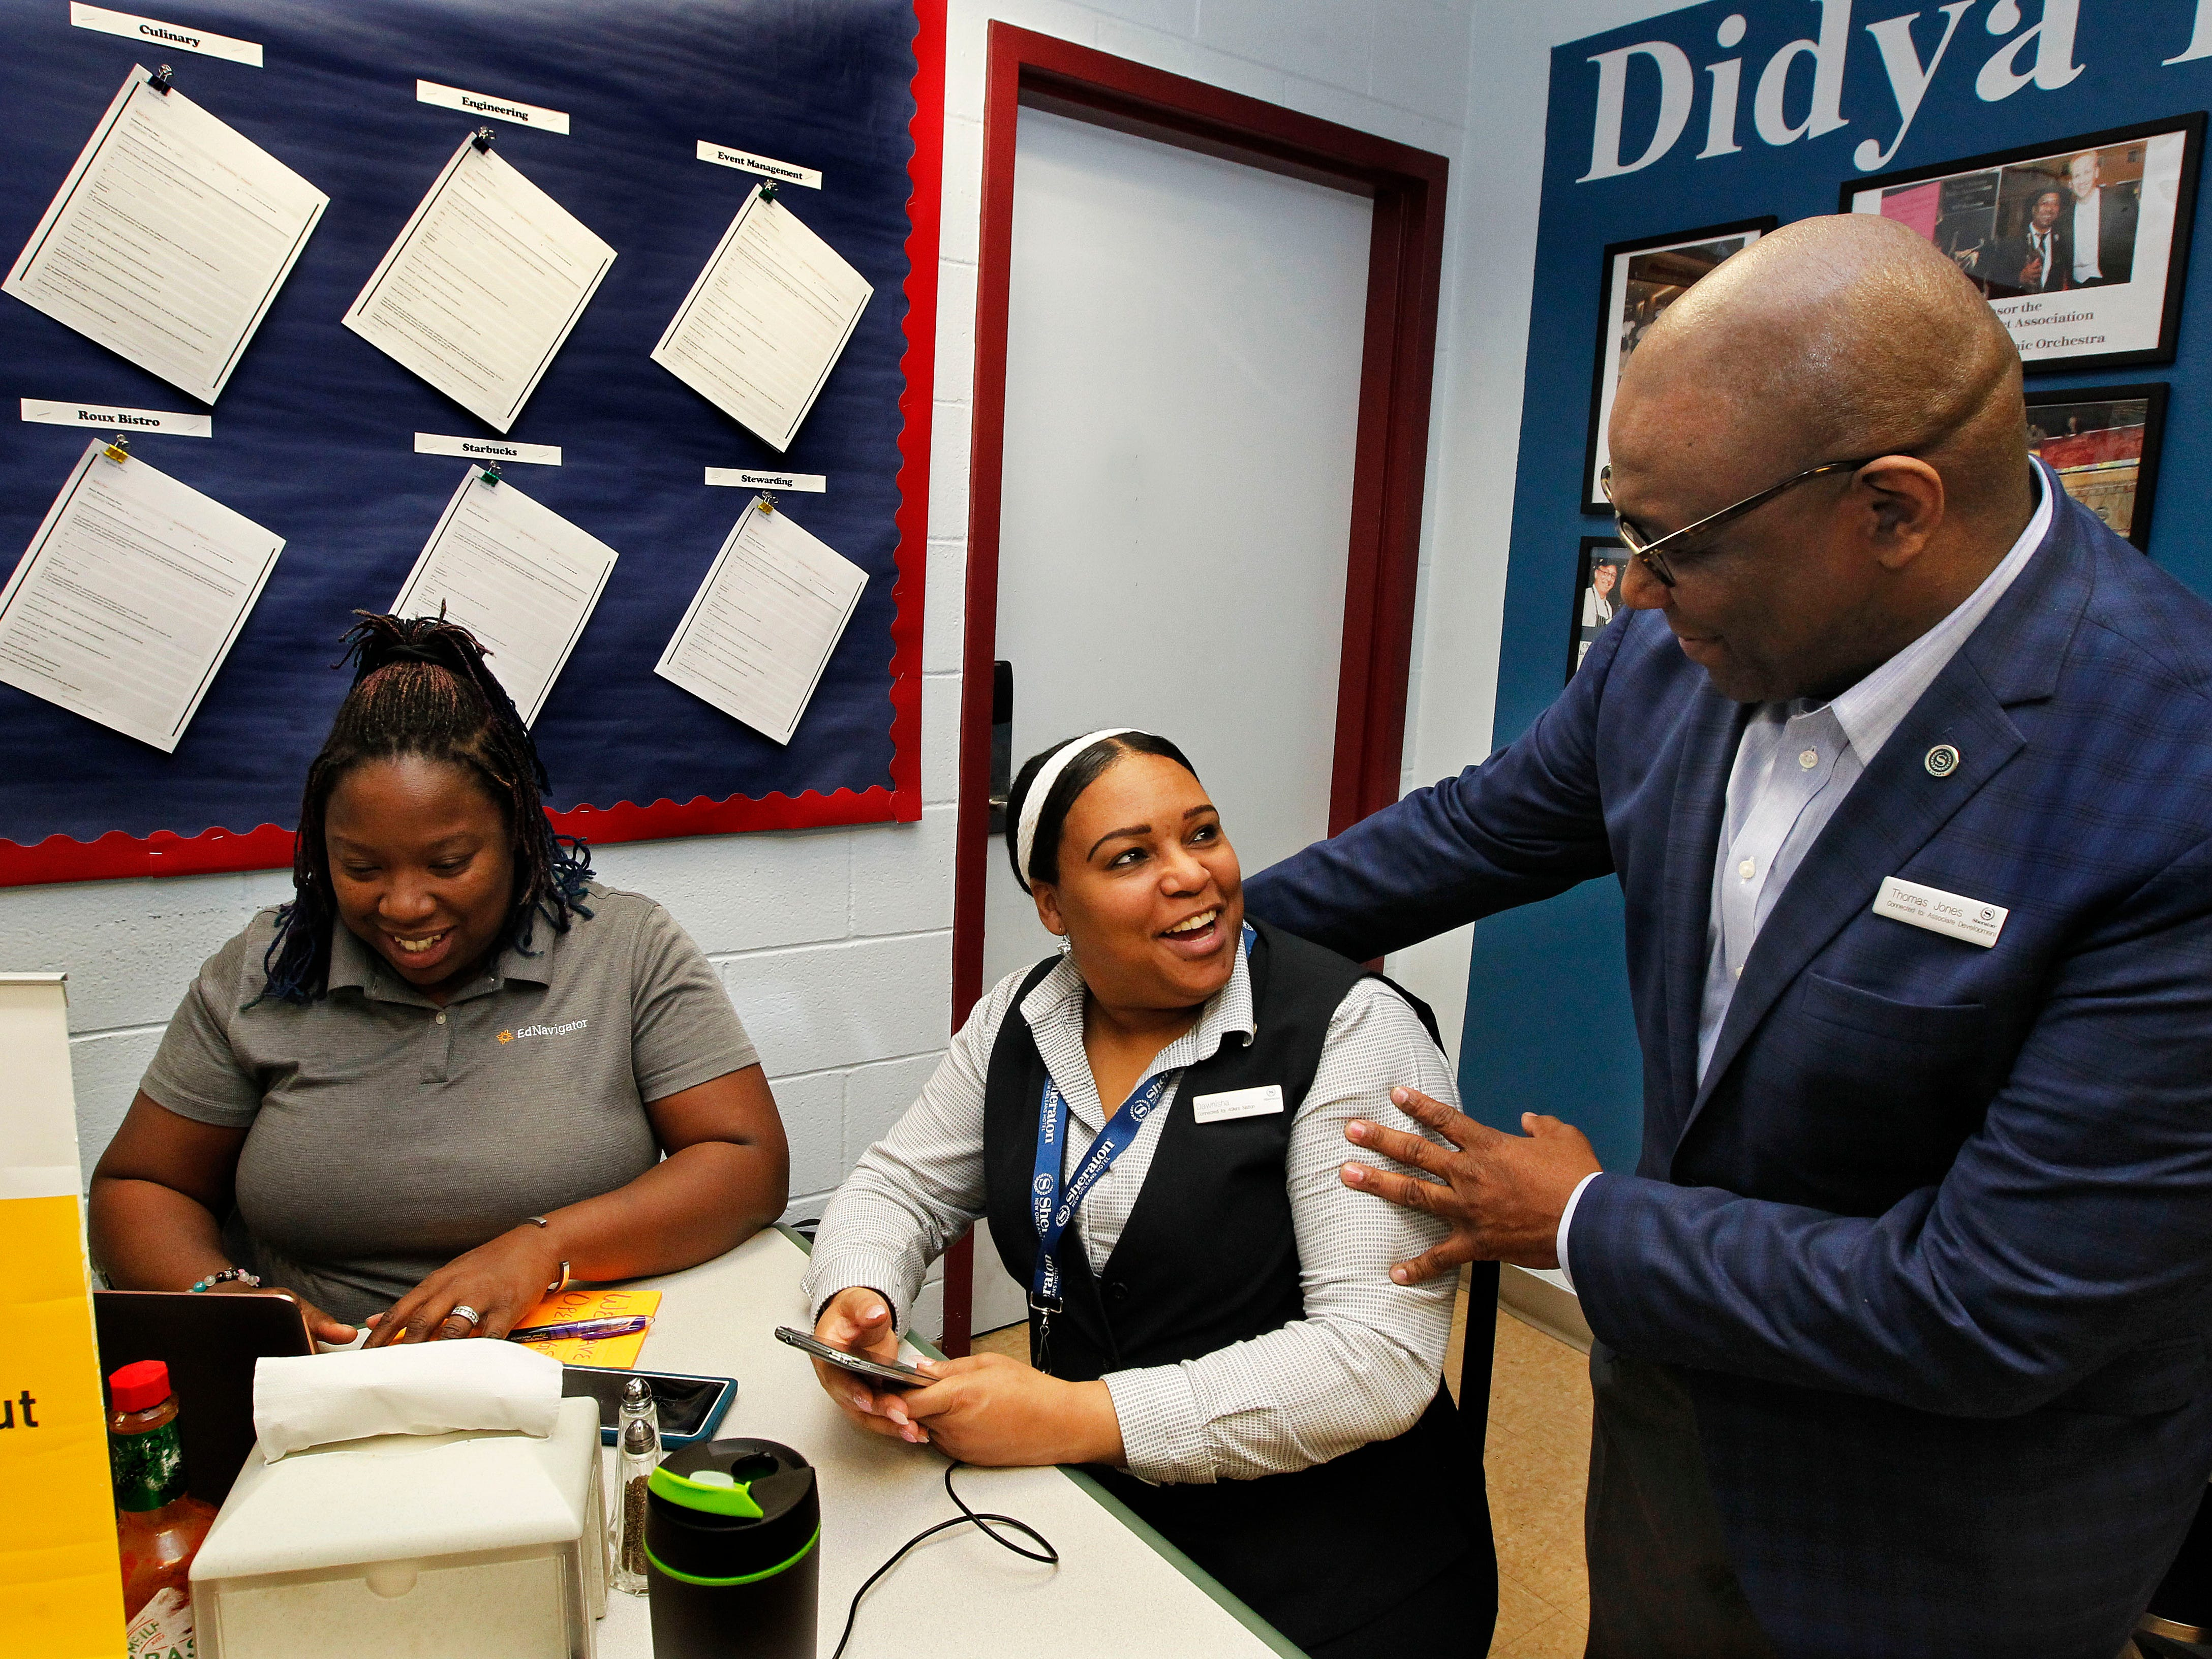 Rameisha Johnson (from left) of EdNavigator with client Dawnisha Norris, and Thomas Jones, Area Director of Human Resources for Starwood Hotels, drops in on Johnson's meeting with Norris in New Orleans. Norris has been in the EdNavigator program for a year. She has eight children.